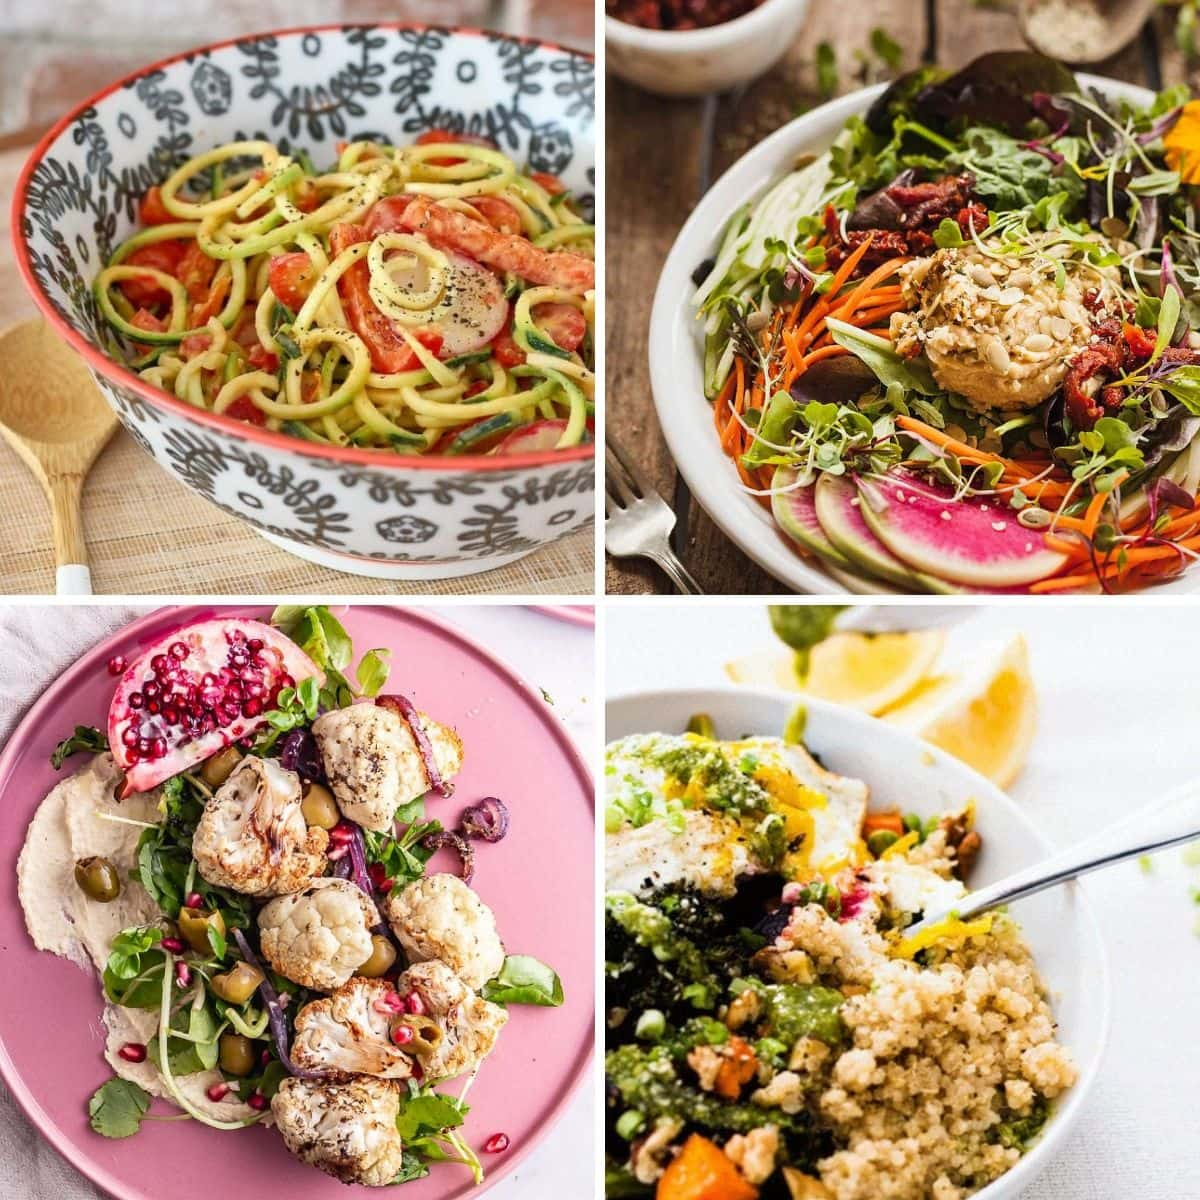 4 images 4 food: Zoodles with Roasted Red Pepper Hummus Dressing, High Protein Fresh Salad with Hummus, Roasted Cauliflower Salad with Hummus, Roasted Winter Vegetable Quinoa Bowl with Basil Hummus Dressing